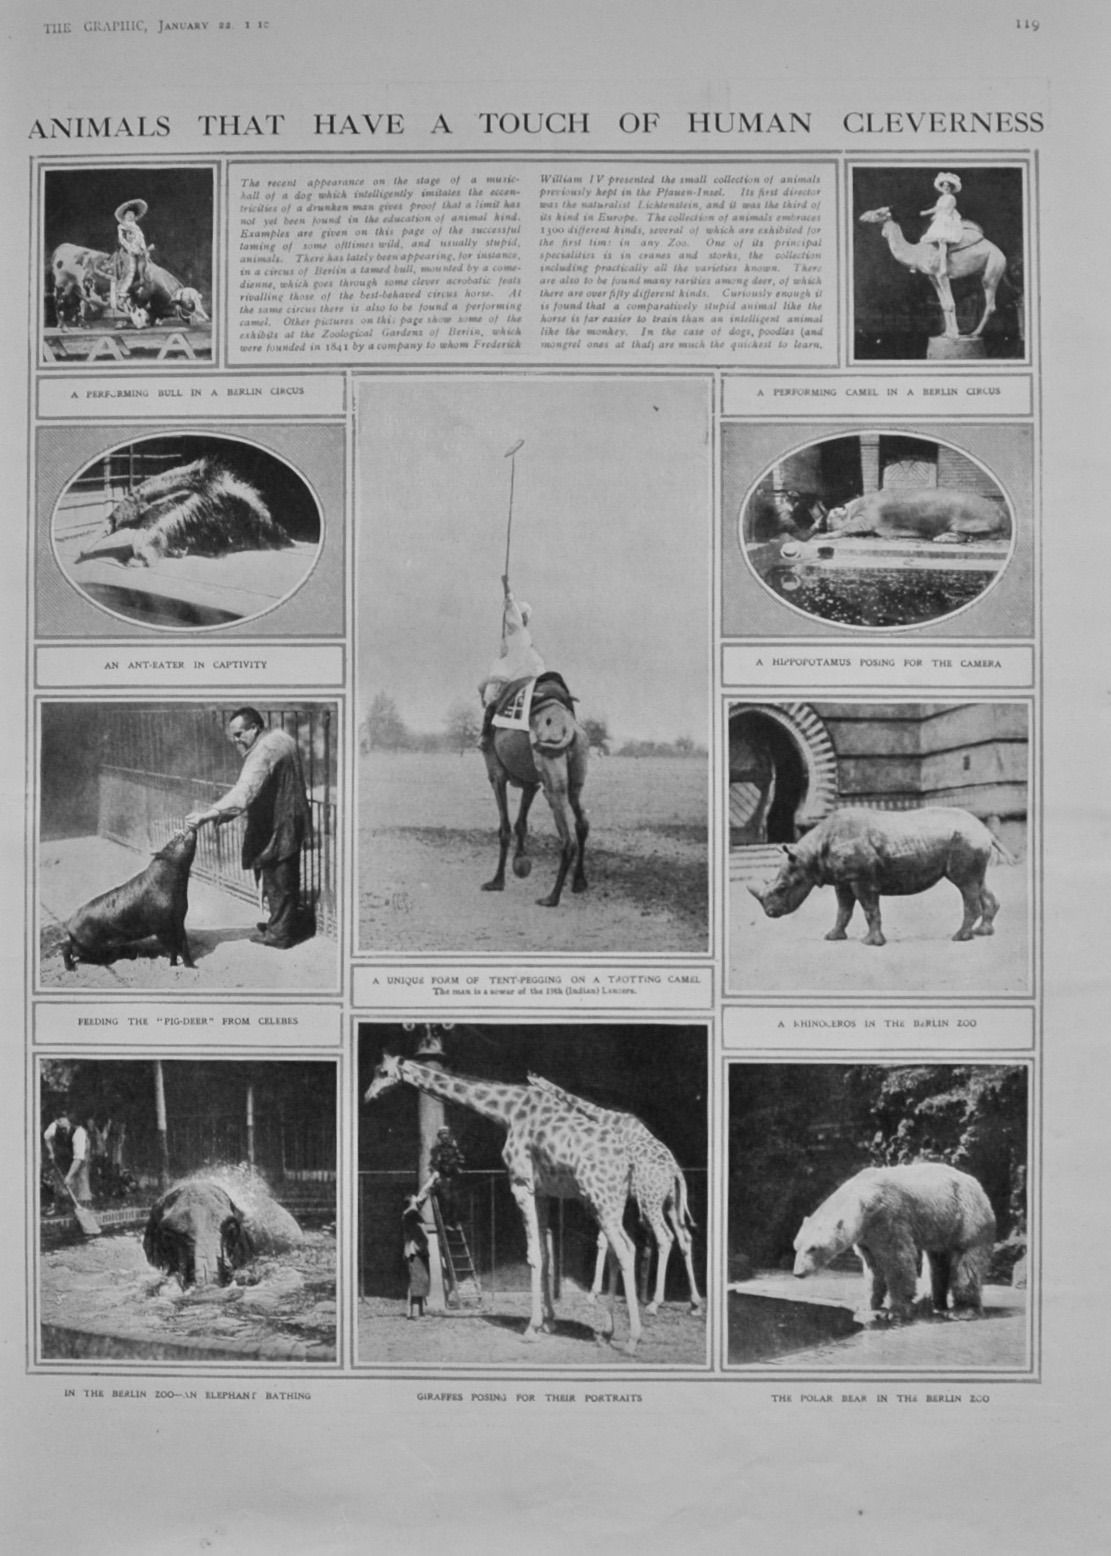 Animals that have a touch of Human Cleverness - 1910